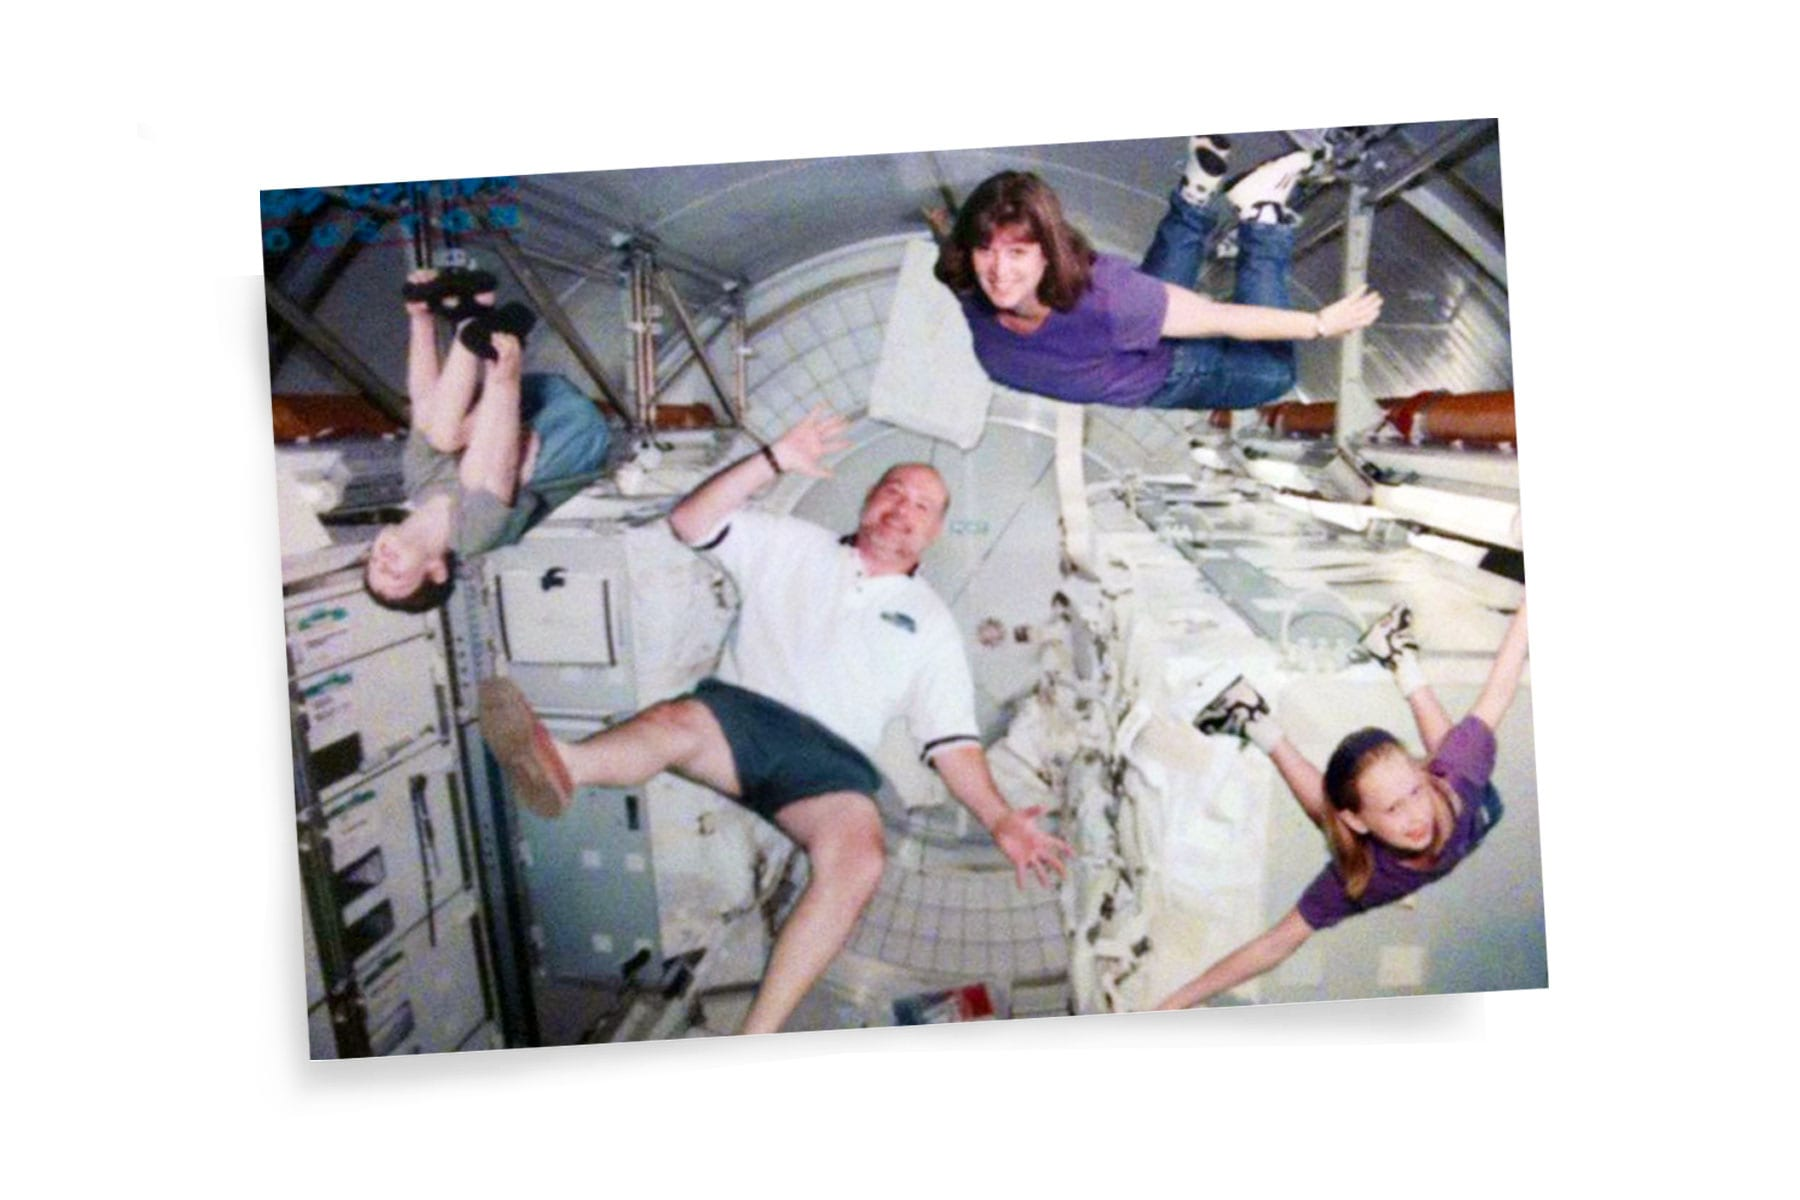 A photo of Hayley Arceneaux floating with her family in a space simulation.